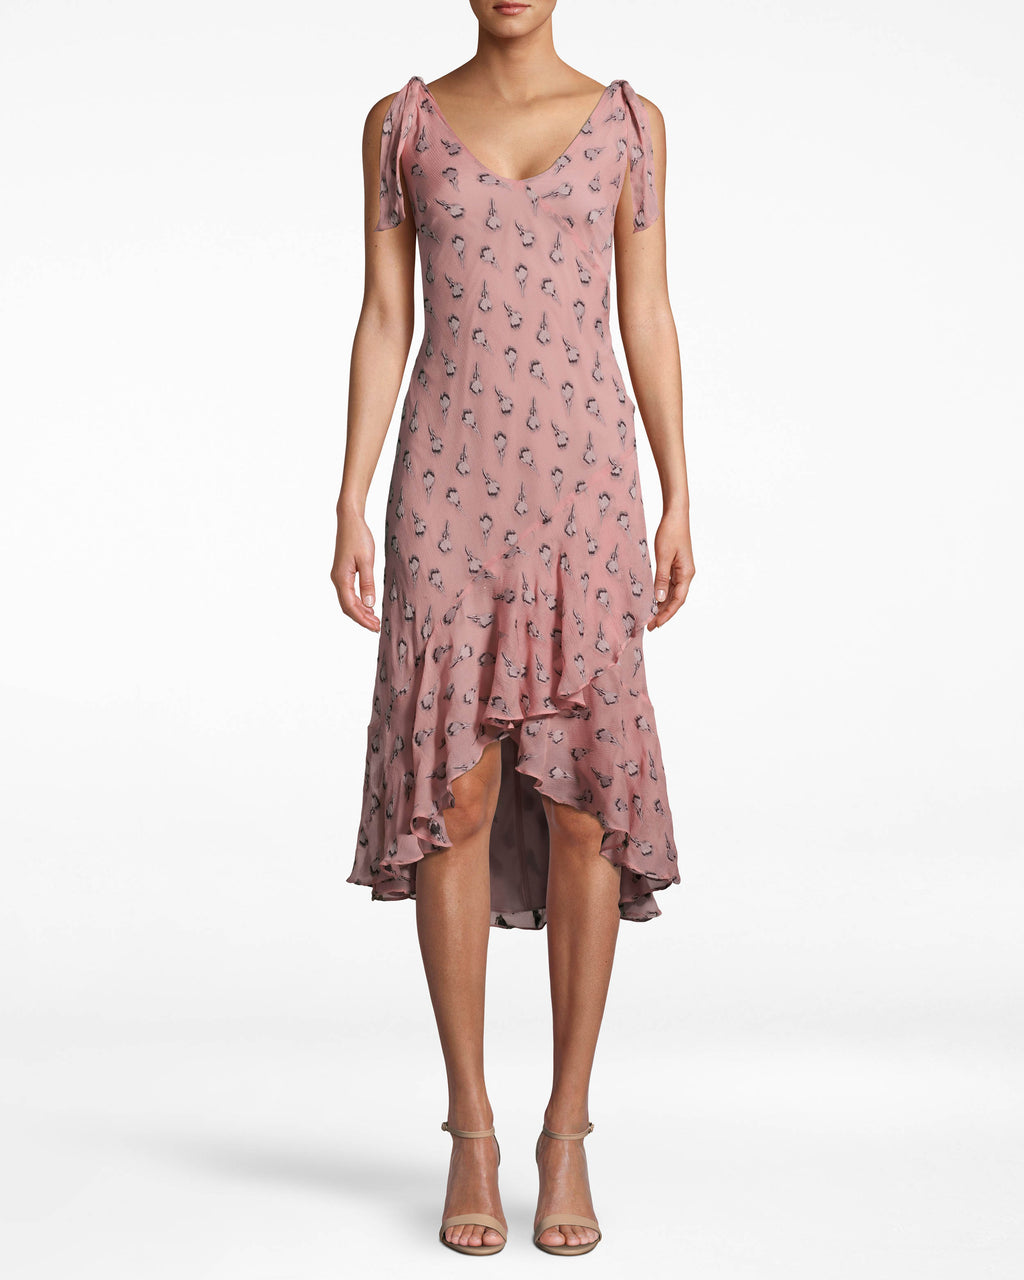 CA10279 - CLIPPED ROSE ASYMMETRICAL RUFFLE TIE DRESS - dresses - midi - THIS STATEMENT DRESS HAS A FLIRTY ASYMMETRICAL HEM WITH RUFFLE DETAIL AND HAS A HIGH LOW SILHOUETTE. THIS BRA FRIENDLY STYLE HAS A SLIGHT V-NECK WITH TIE STRAPS. Add 1 line break STYLIST TIP: WEAR WITH NUDE SHOES AND SPARKLY GOLD EARRINGS.